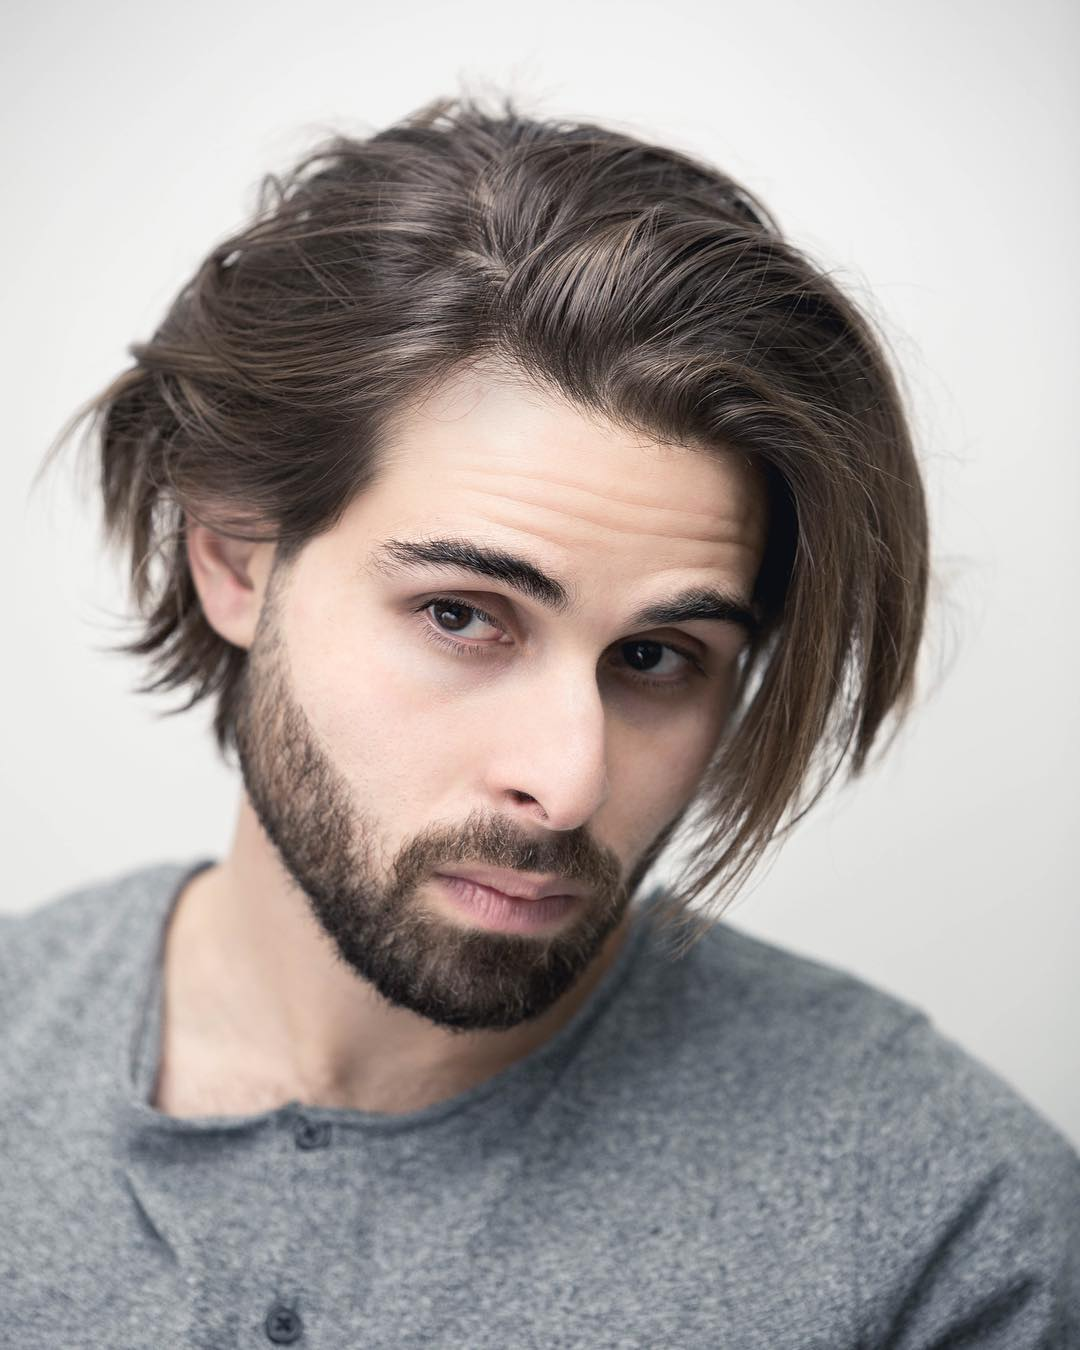 How To Grow Your Hair Out Mens Tutorial